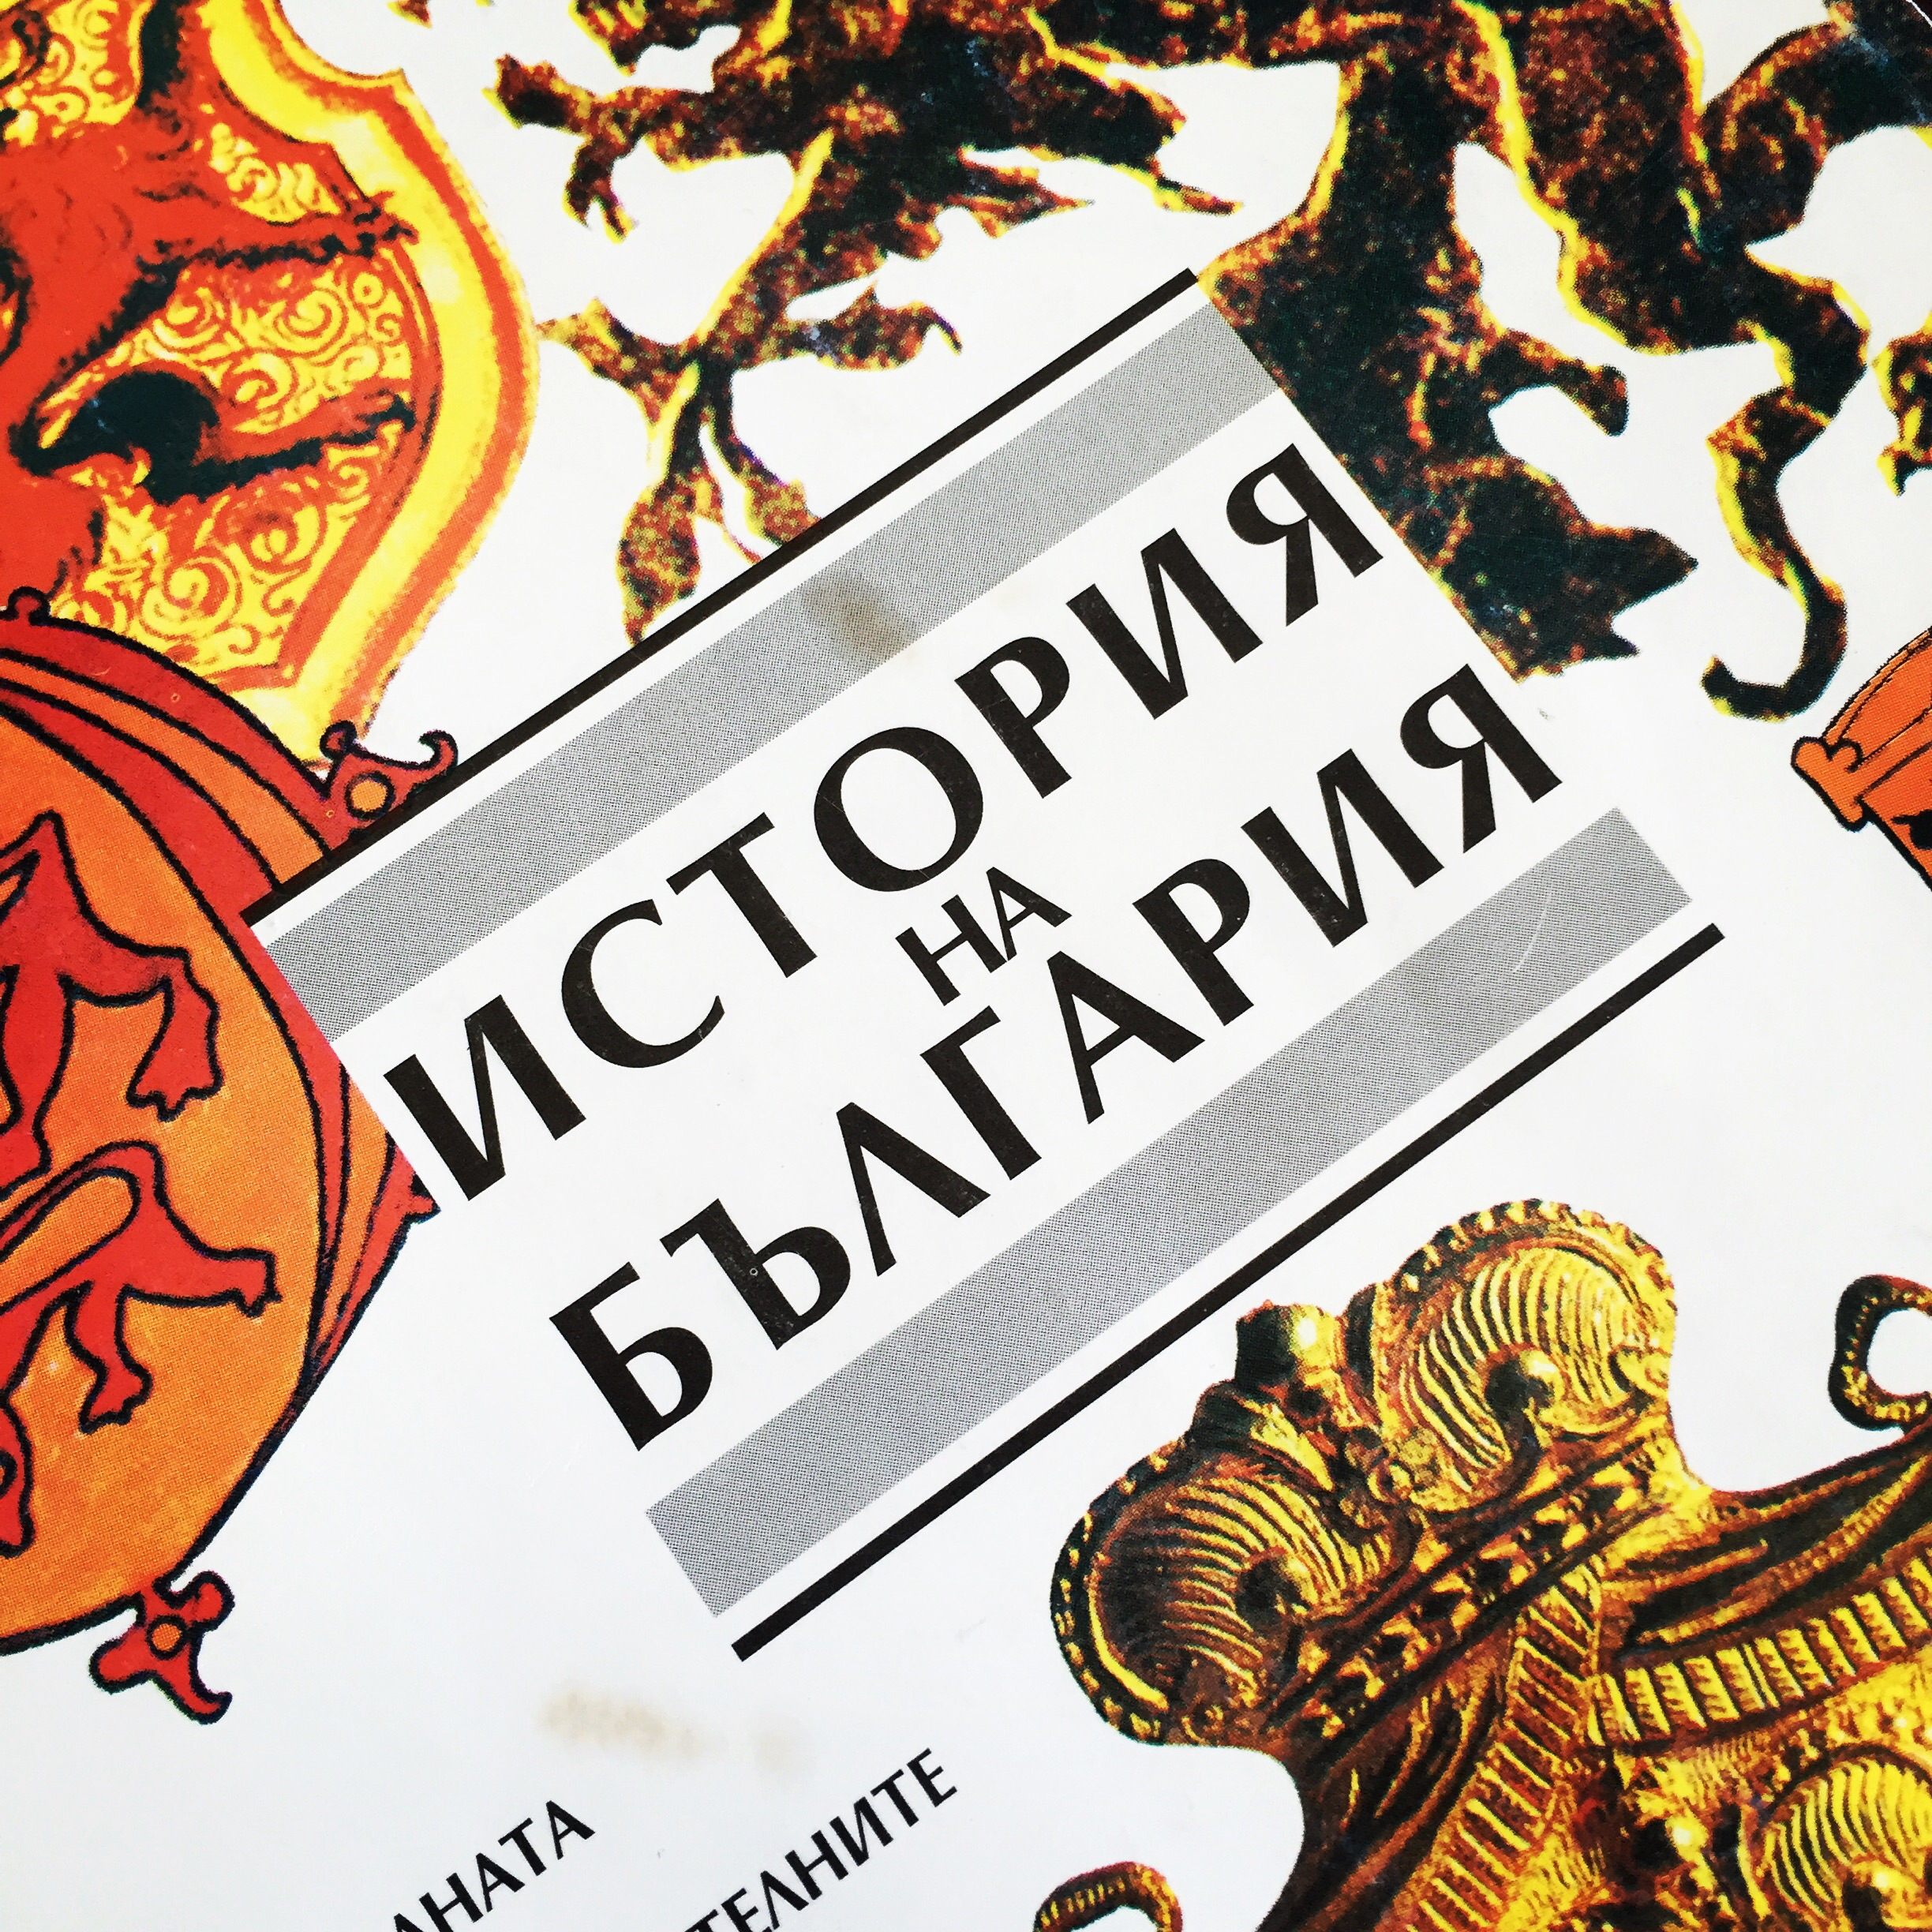 The History of Bulgaria.